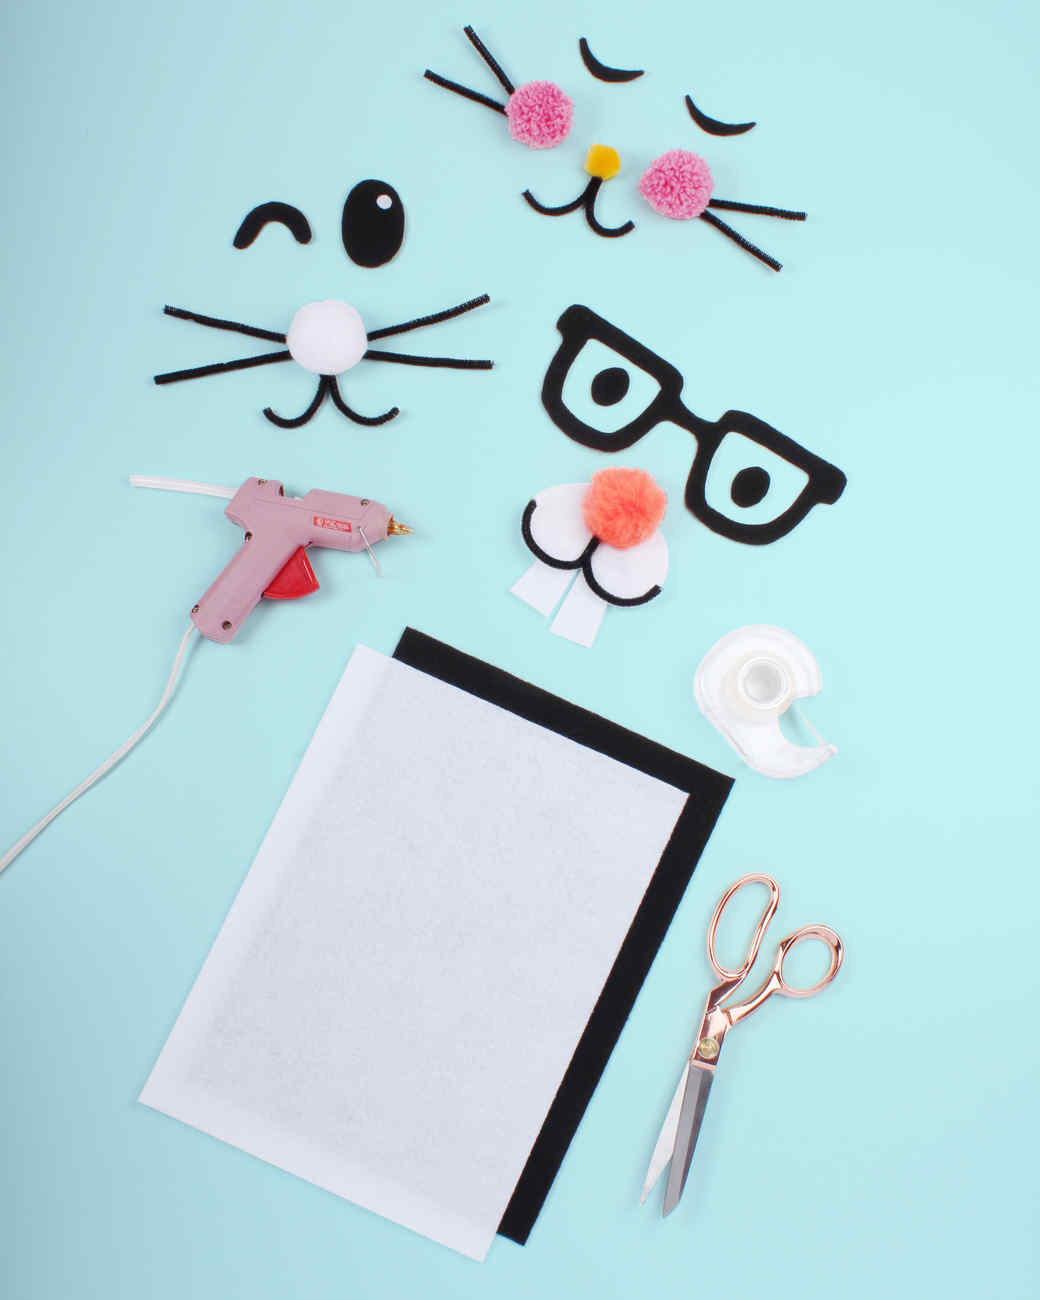 bunny face clothing craft